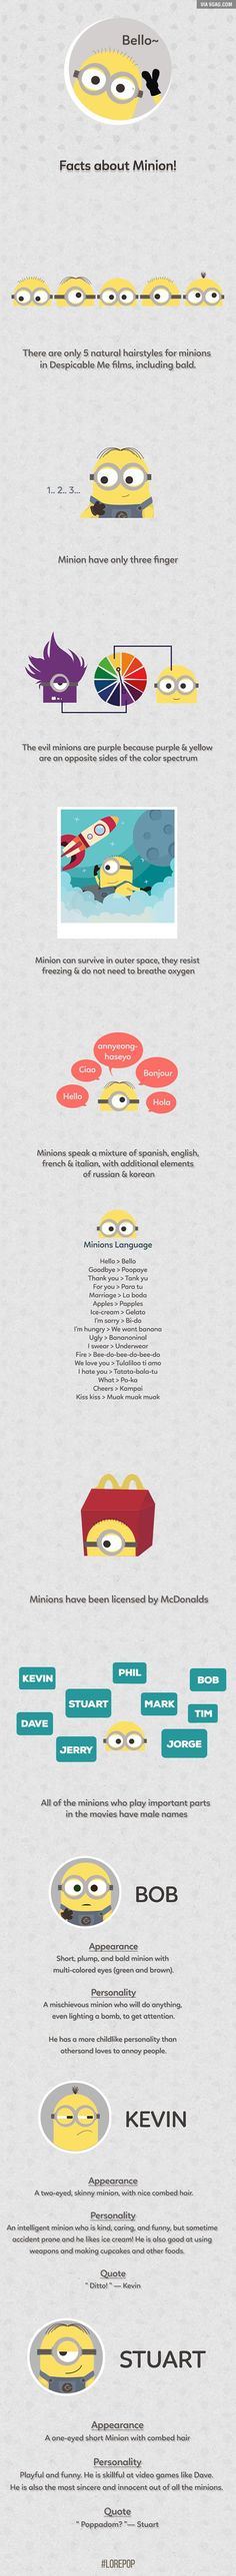 Fun Facts About Minions That You Might Not Know